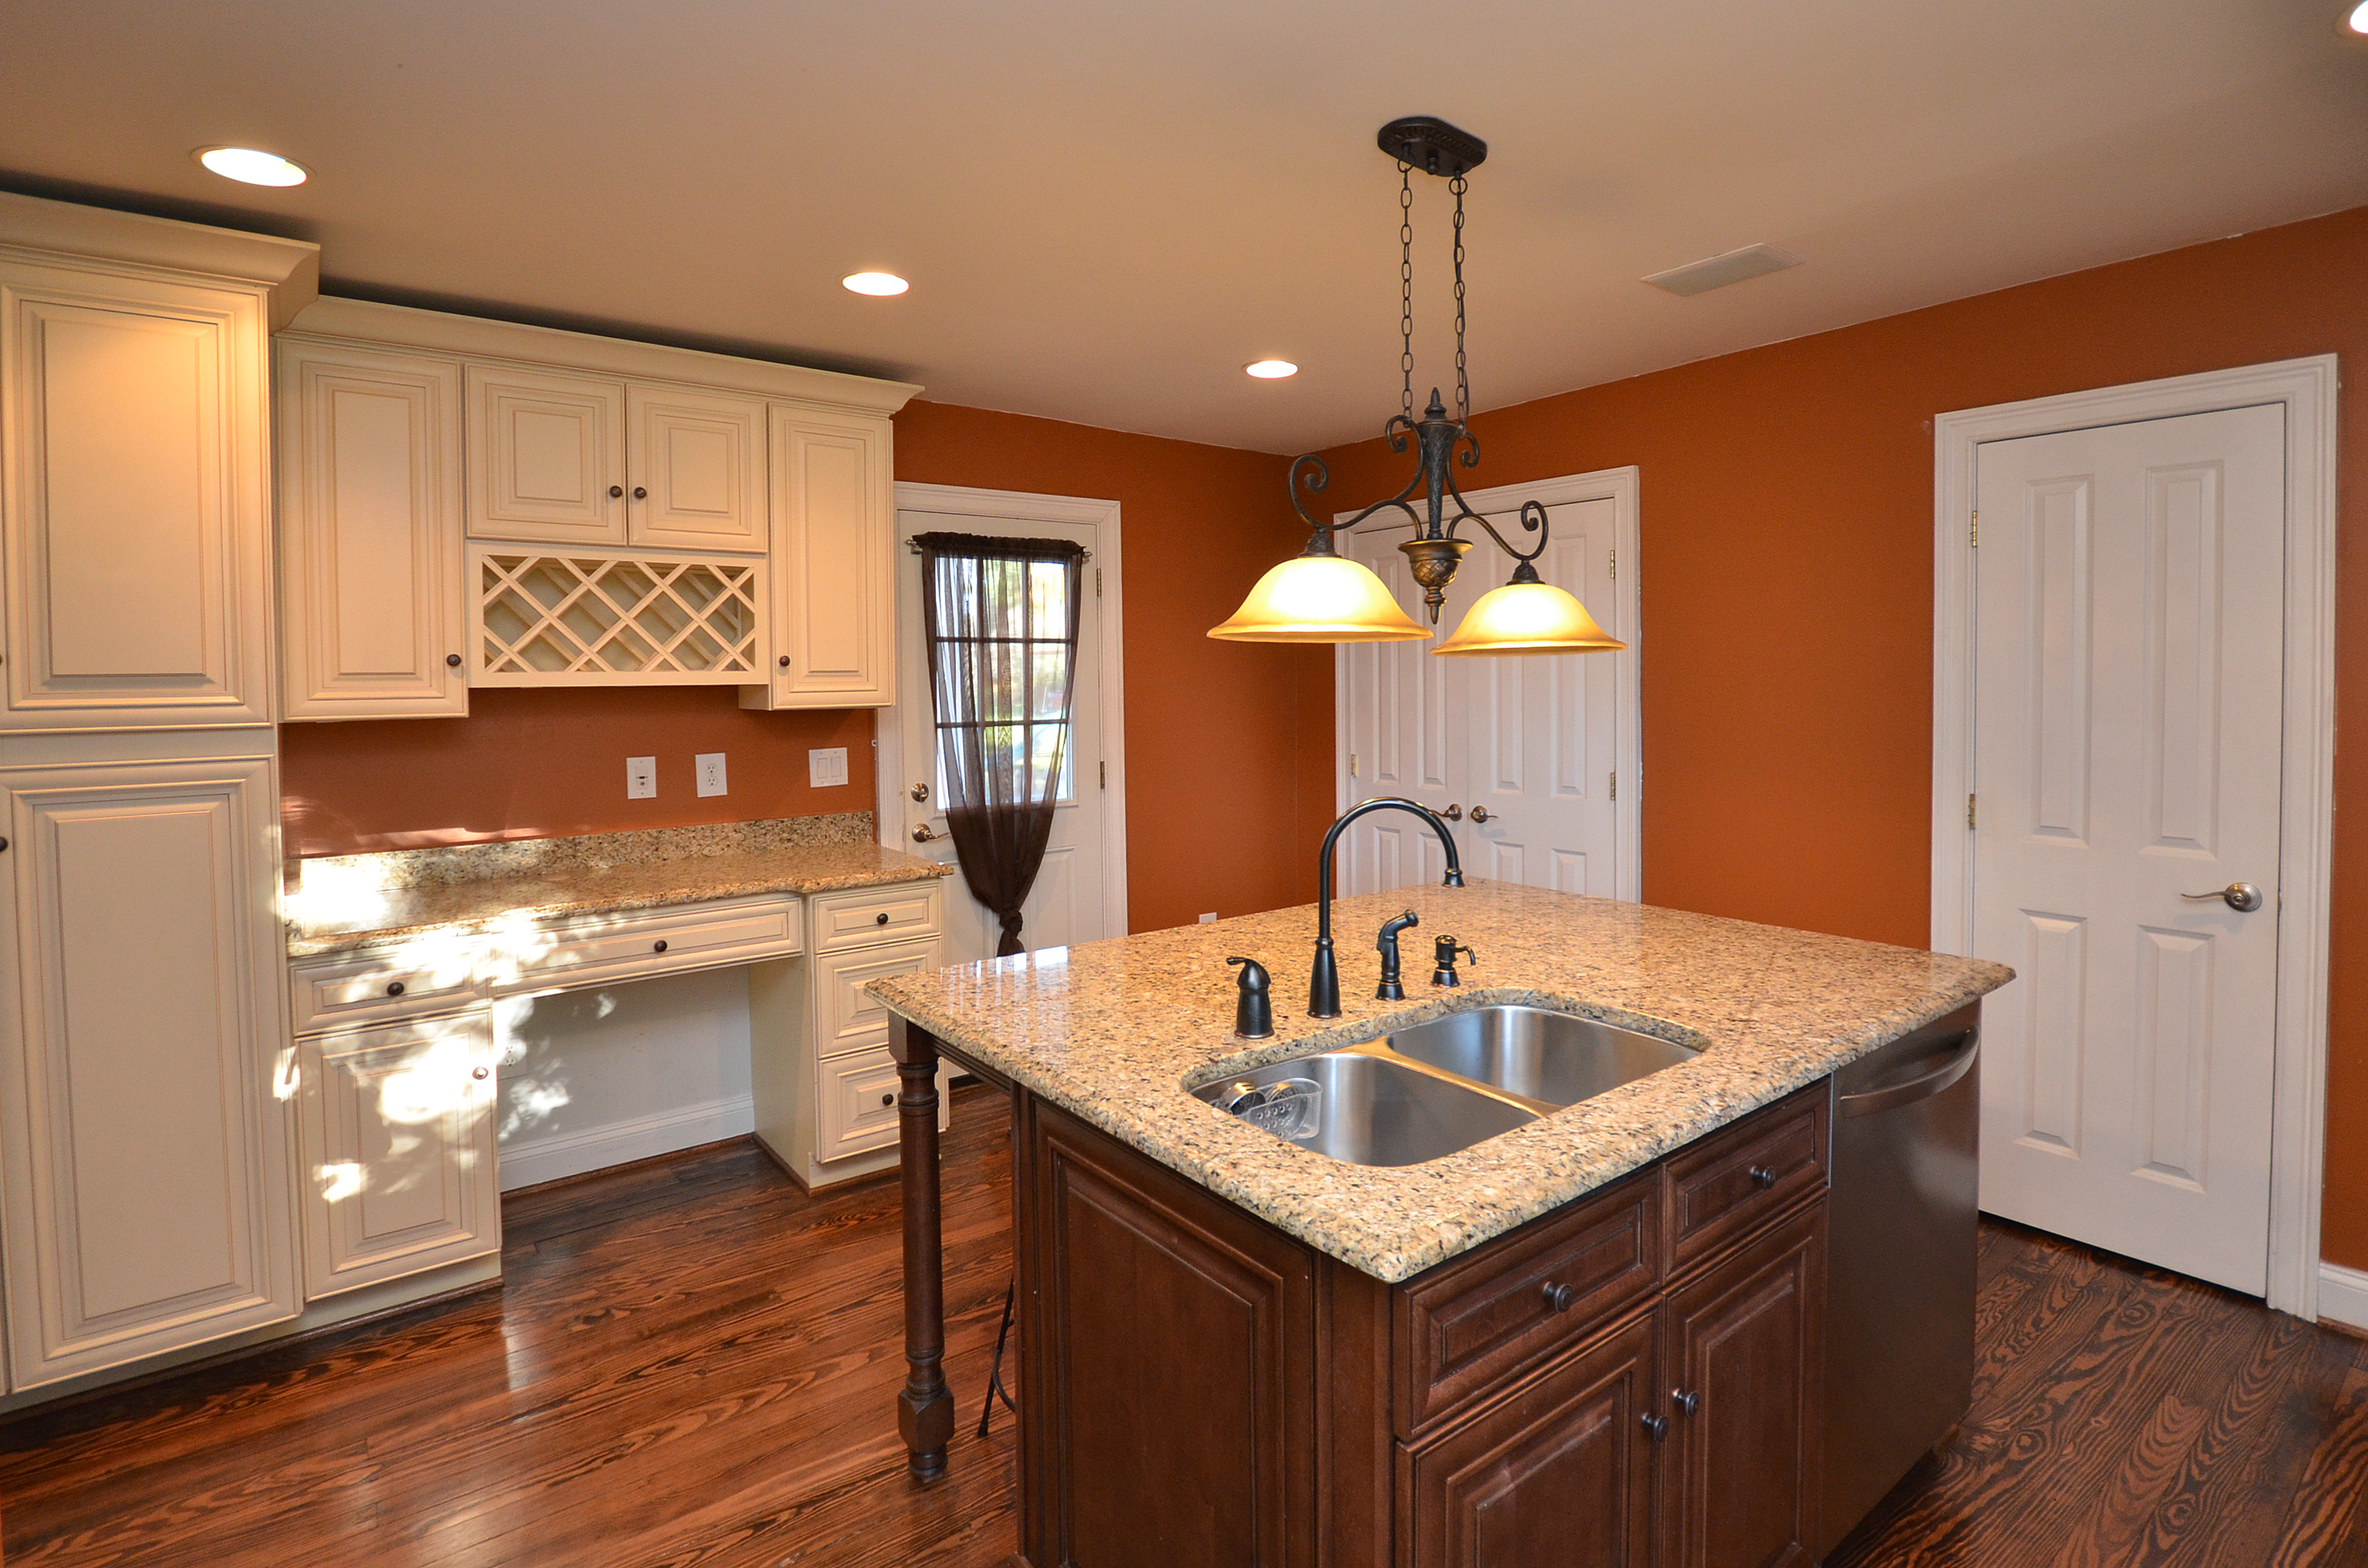 The kitchen of the home at 9 S Berlin Turnpike … one of only 29 homes actively listed for sale in Lovettsville!